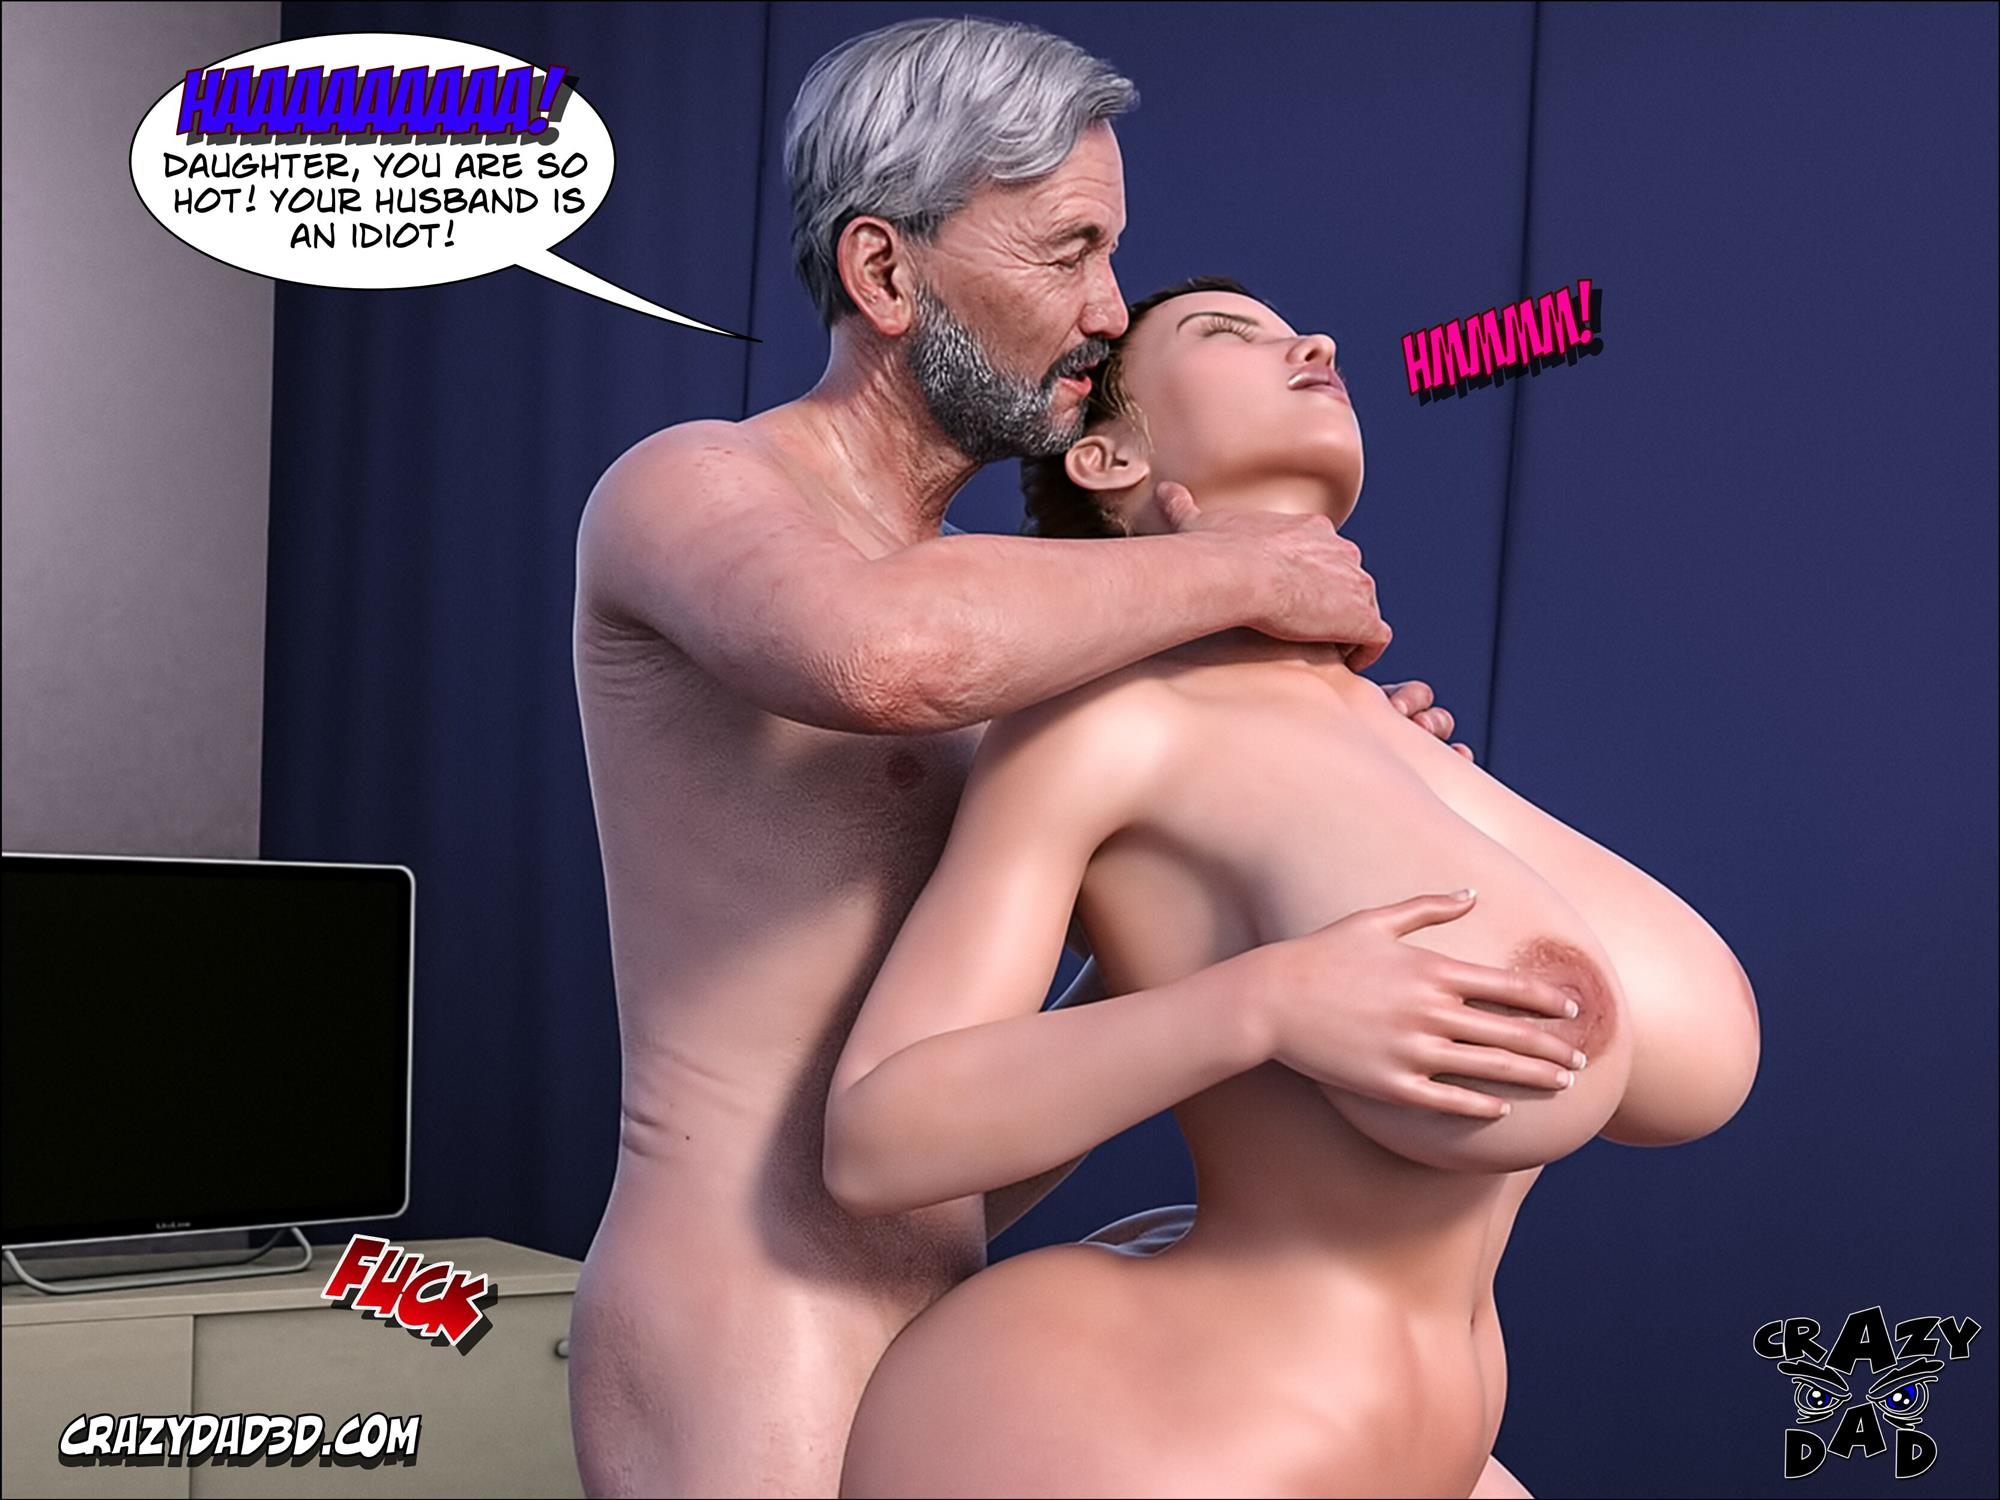 Father-in-Law at Home 10 [Crazy Dad 3D] - Foto 11